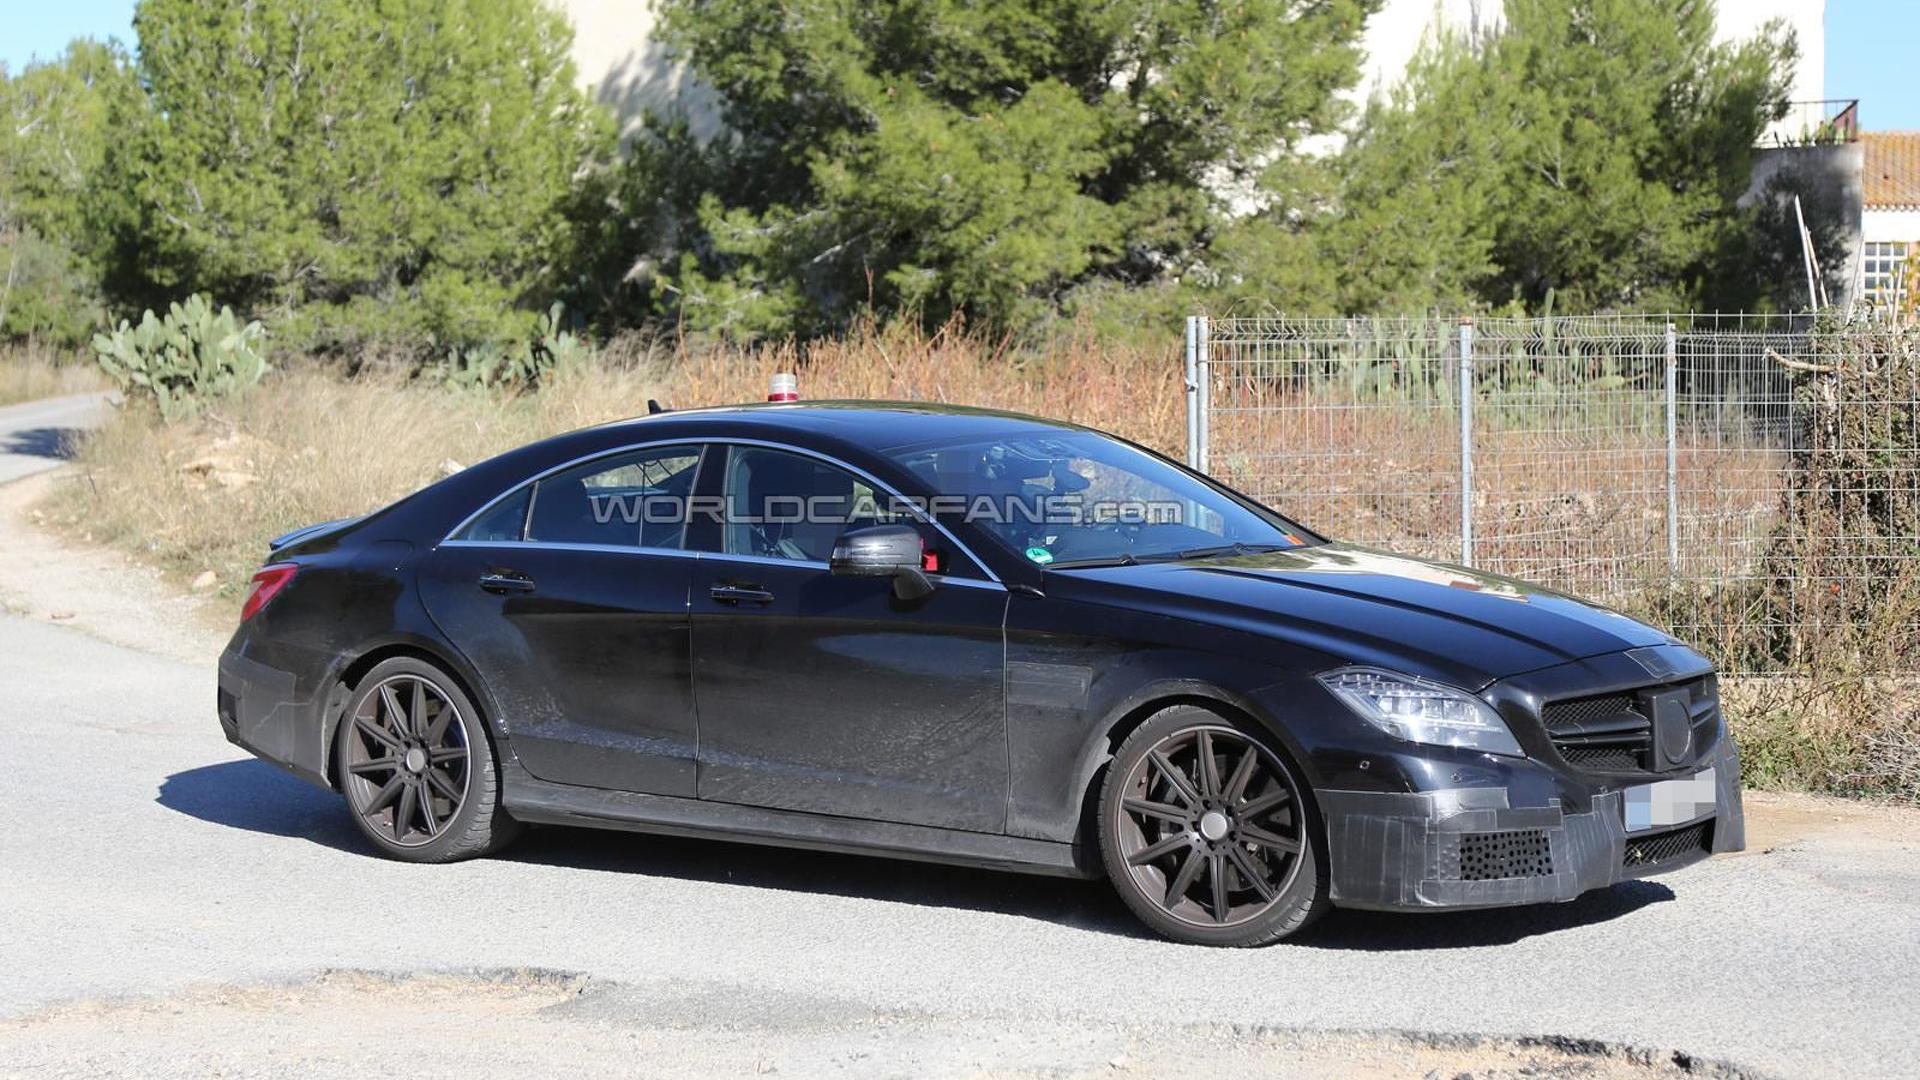 2015 Mercedes-Benz CLS63 AMG Photos, Specs and Review - RS